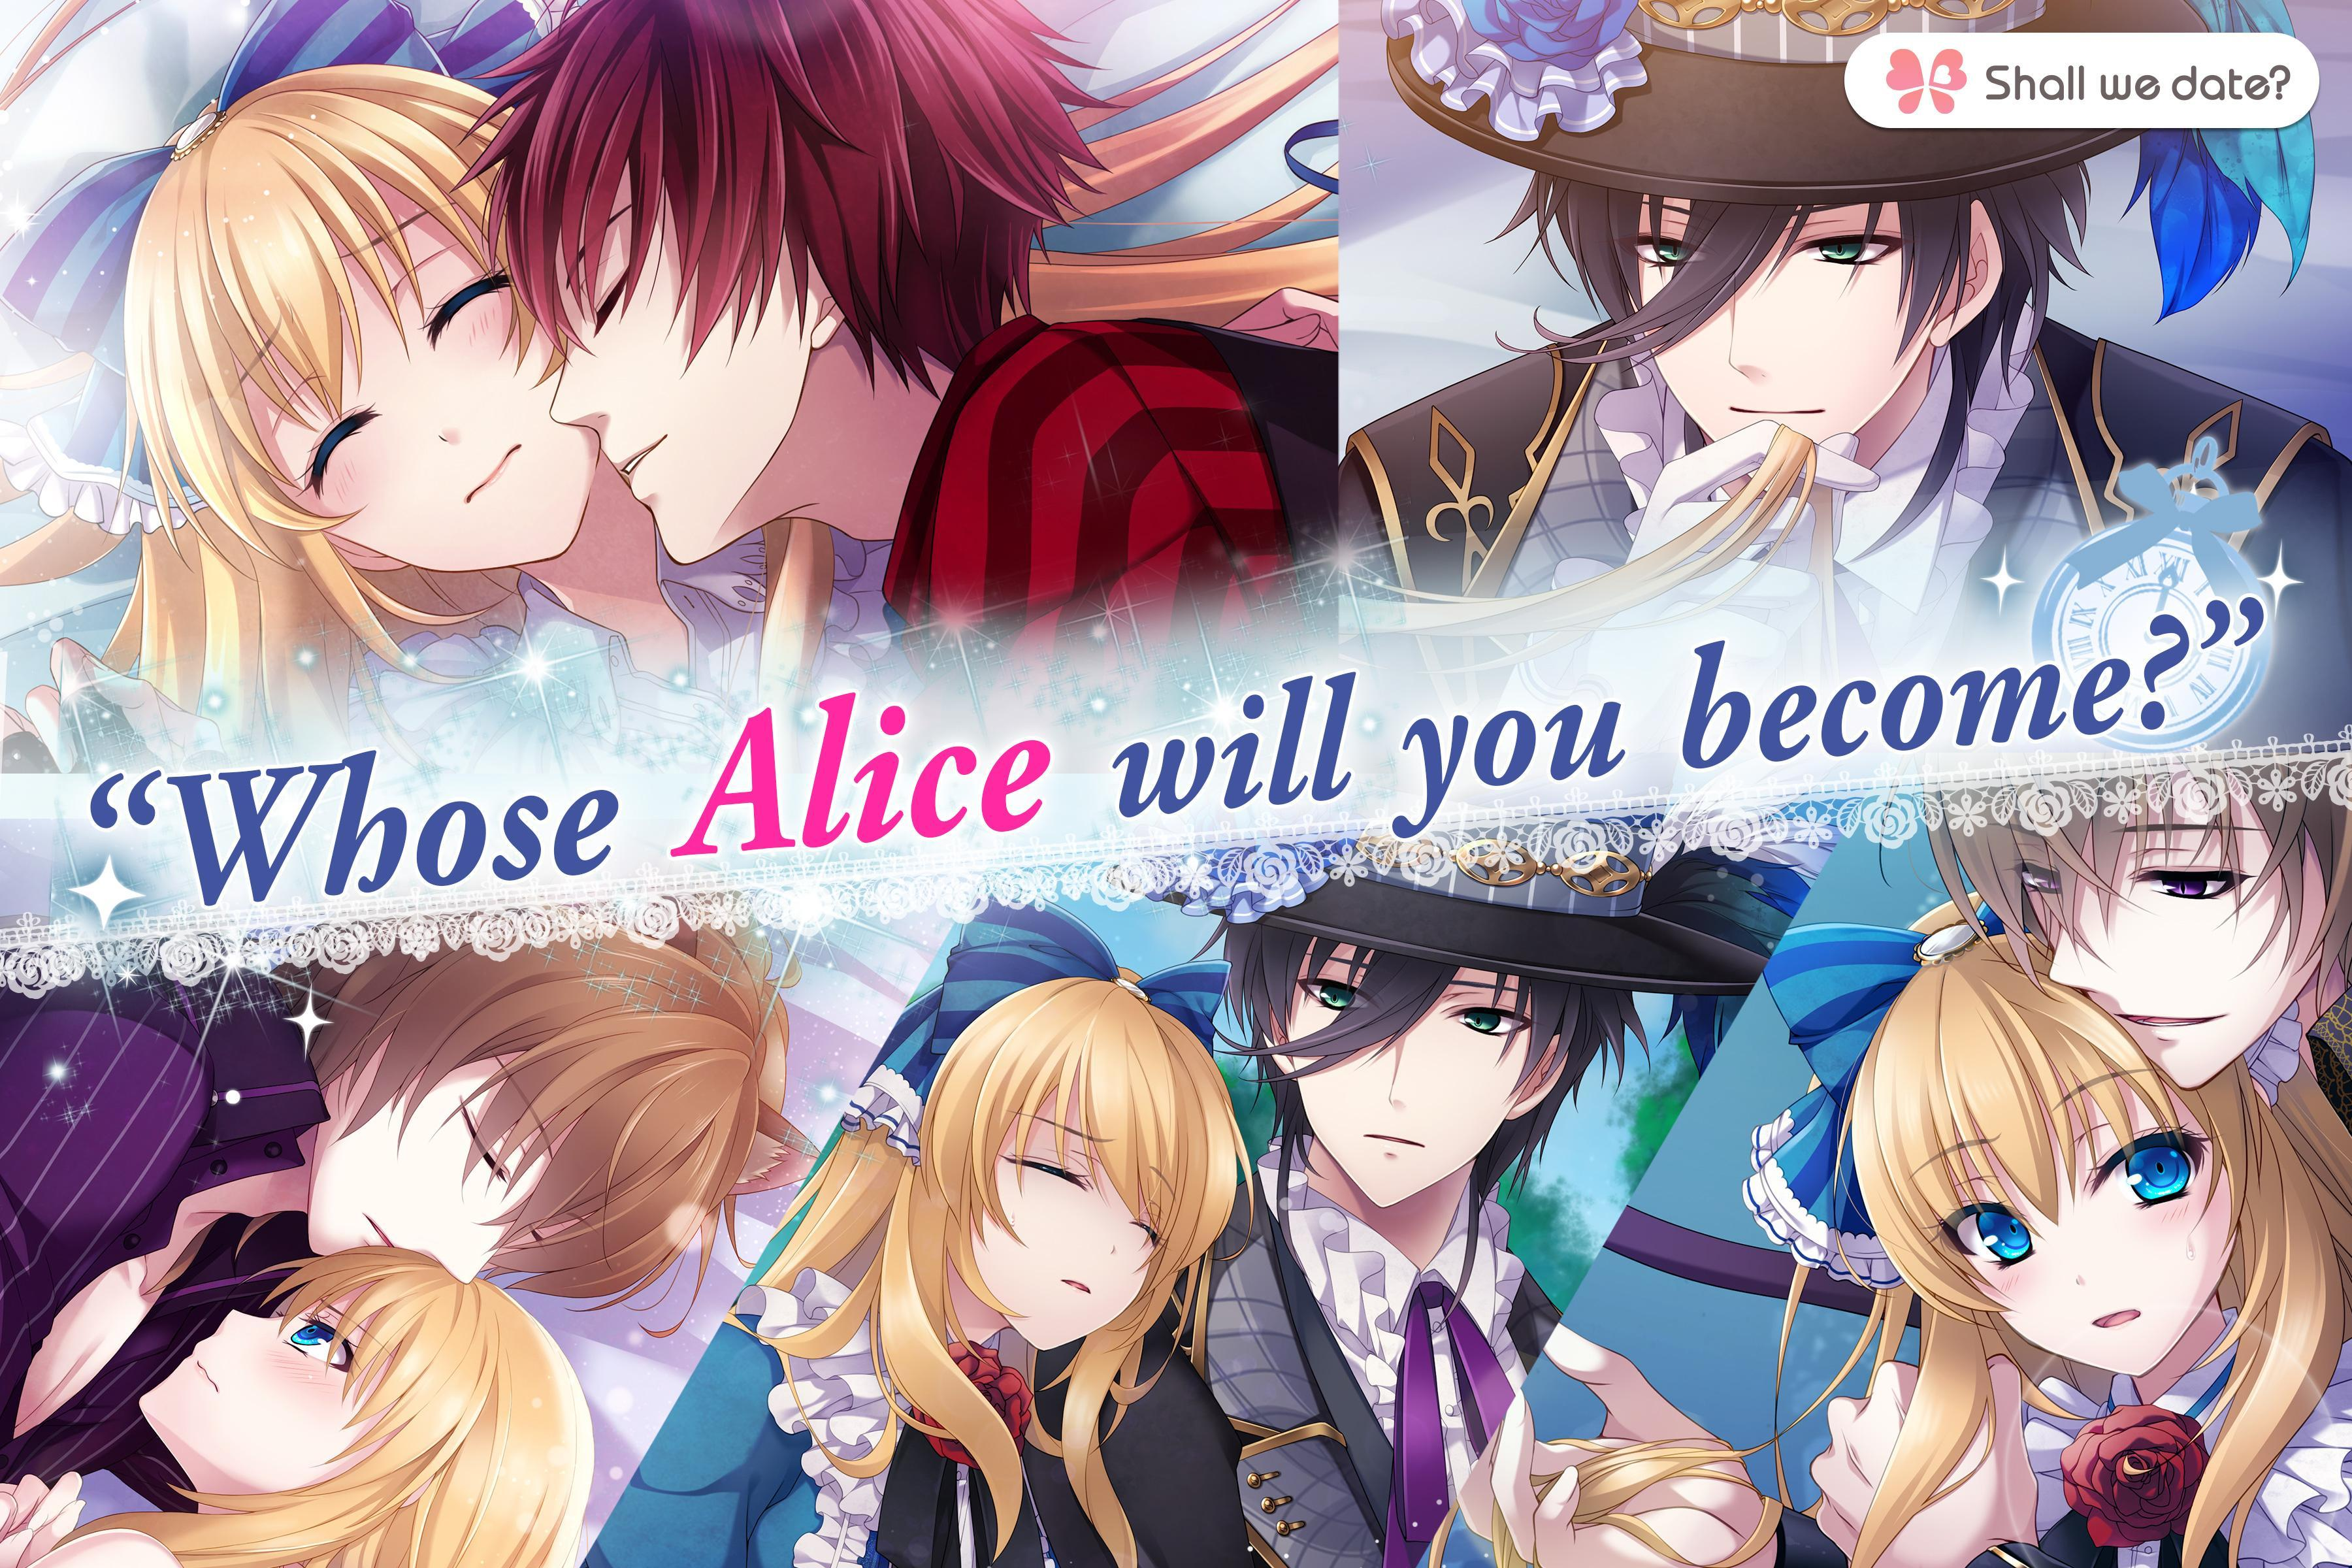 Lost Alice - otome game/dating sim #shall we date 1.5.1 Screenshot 9